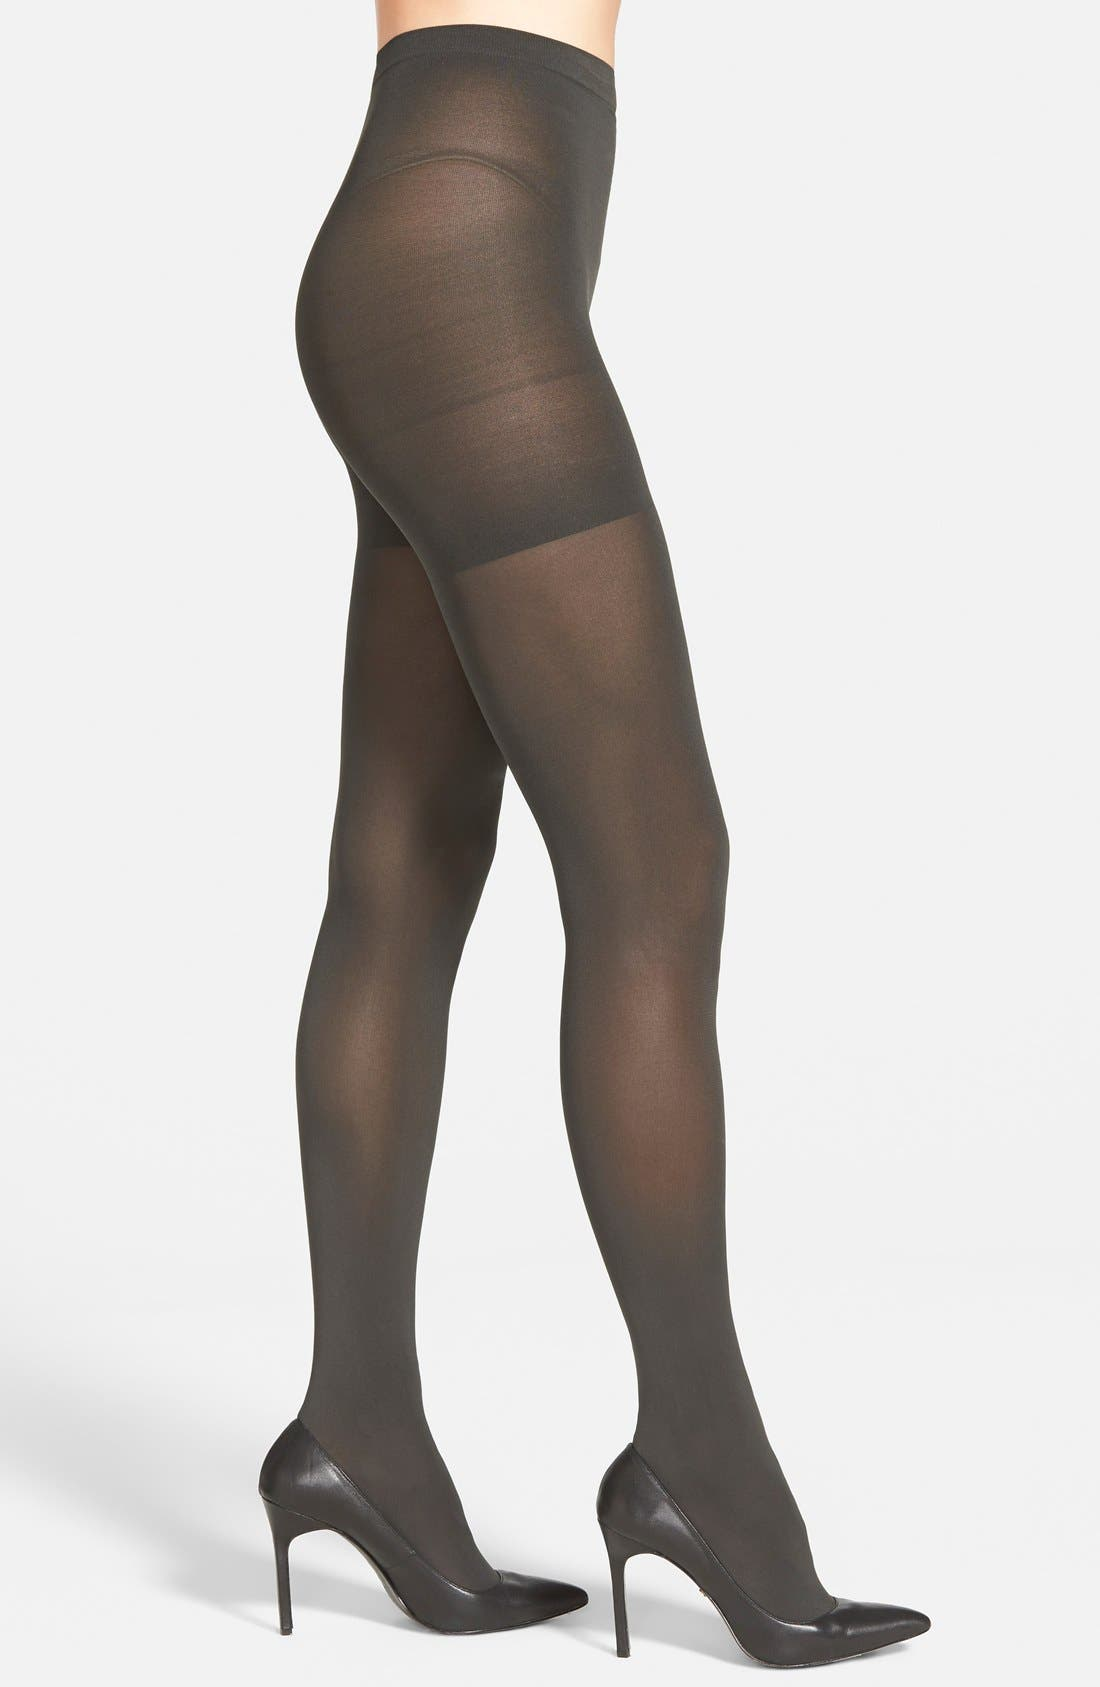 Main Image - SPANX® 'Tight End' Shaping Tights (Regular & Plus Size)